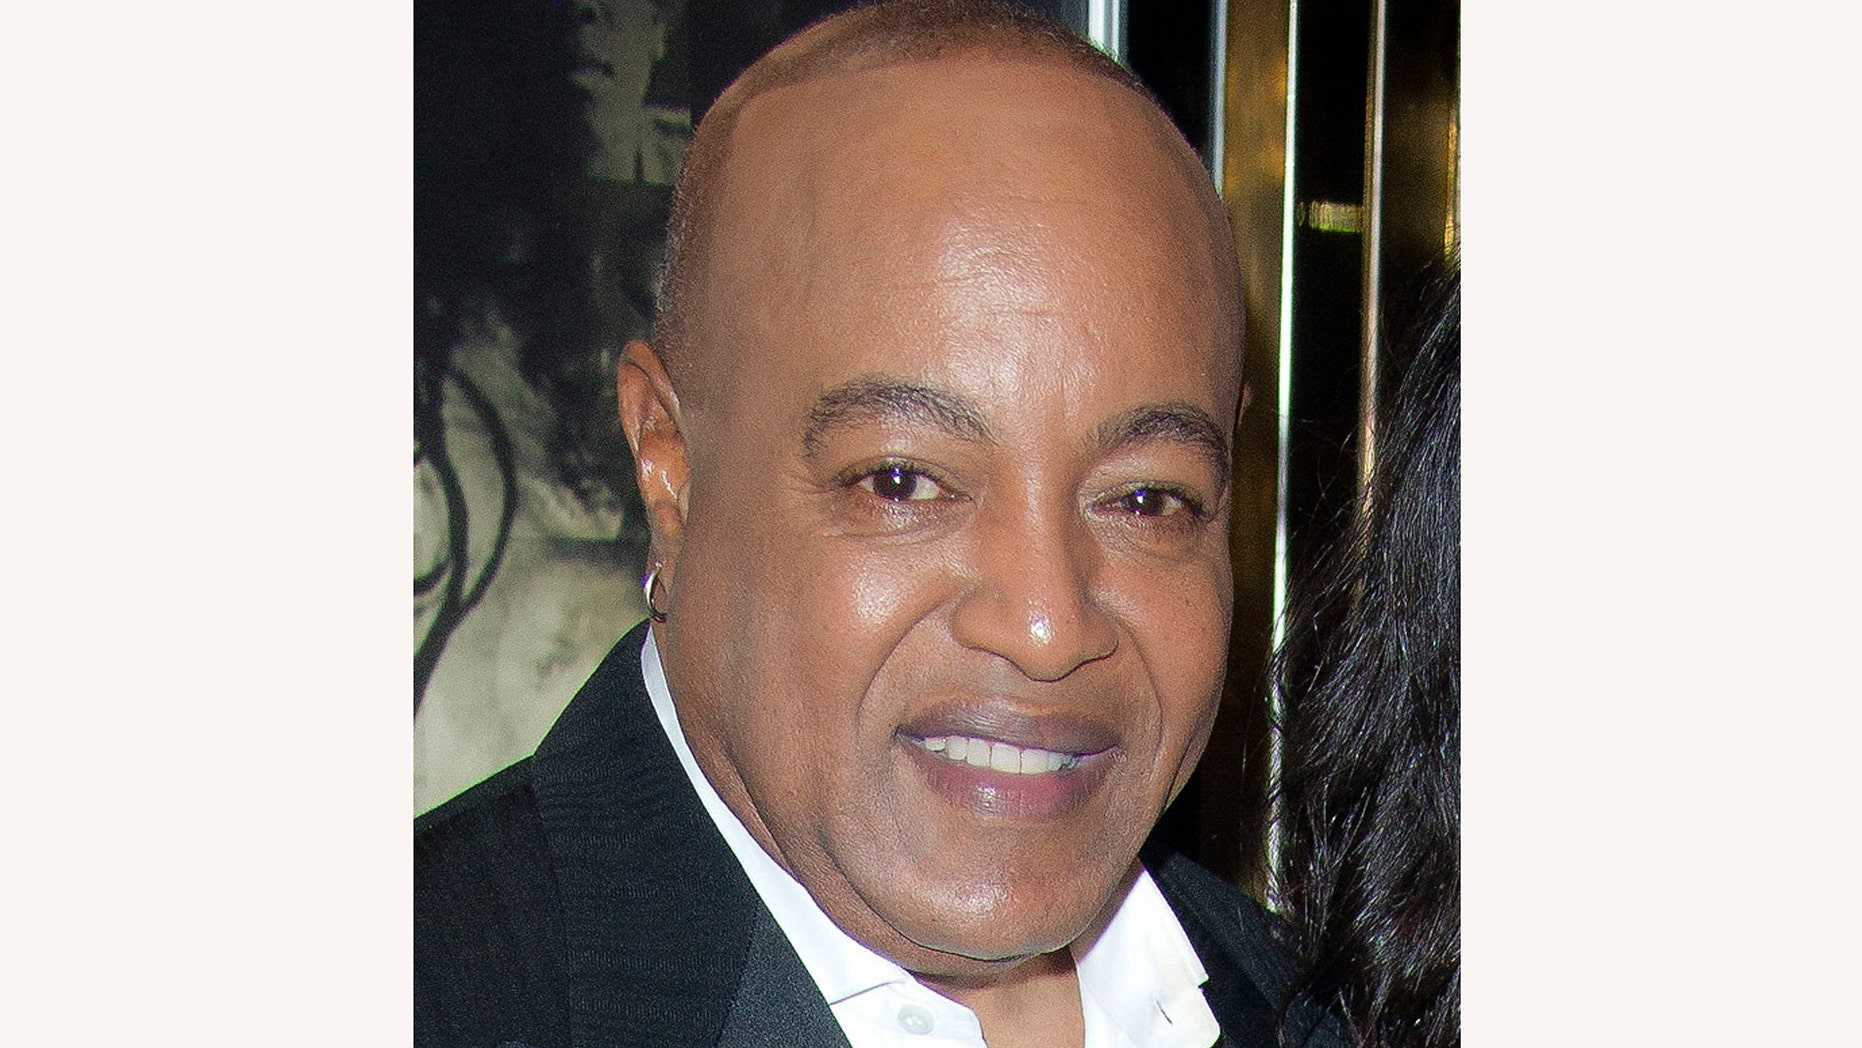 """This Nov. 2, 2011 file photo shows Peabo Bryson at the European premiere of """"Michael Jackson: The Life Of An Icon,"""" in London. A rep for Bryson says the R&B singer, known for hits such as """"Beauty & the Beast"""" and """"A Whole New World,"""" is hospitalized after suffering a """"mild heart attack."""" A statement released Monday, April 29, 2019, said the double Grammy-winner was stricken Saturday morning and is now in stable condition."""